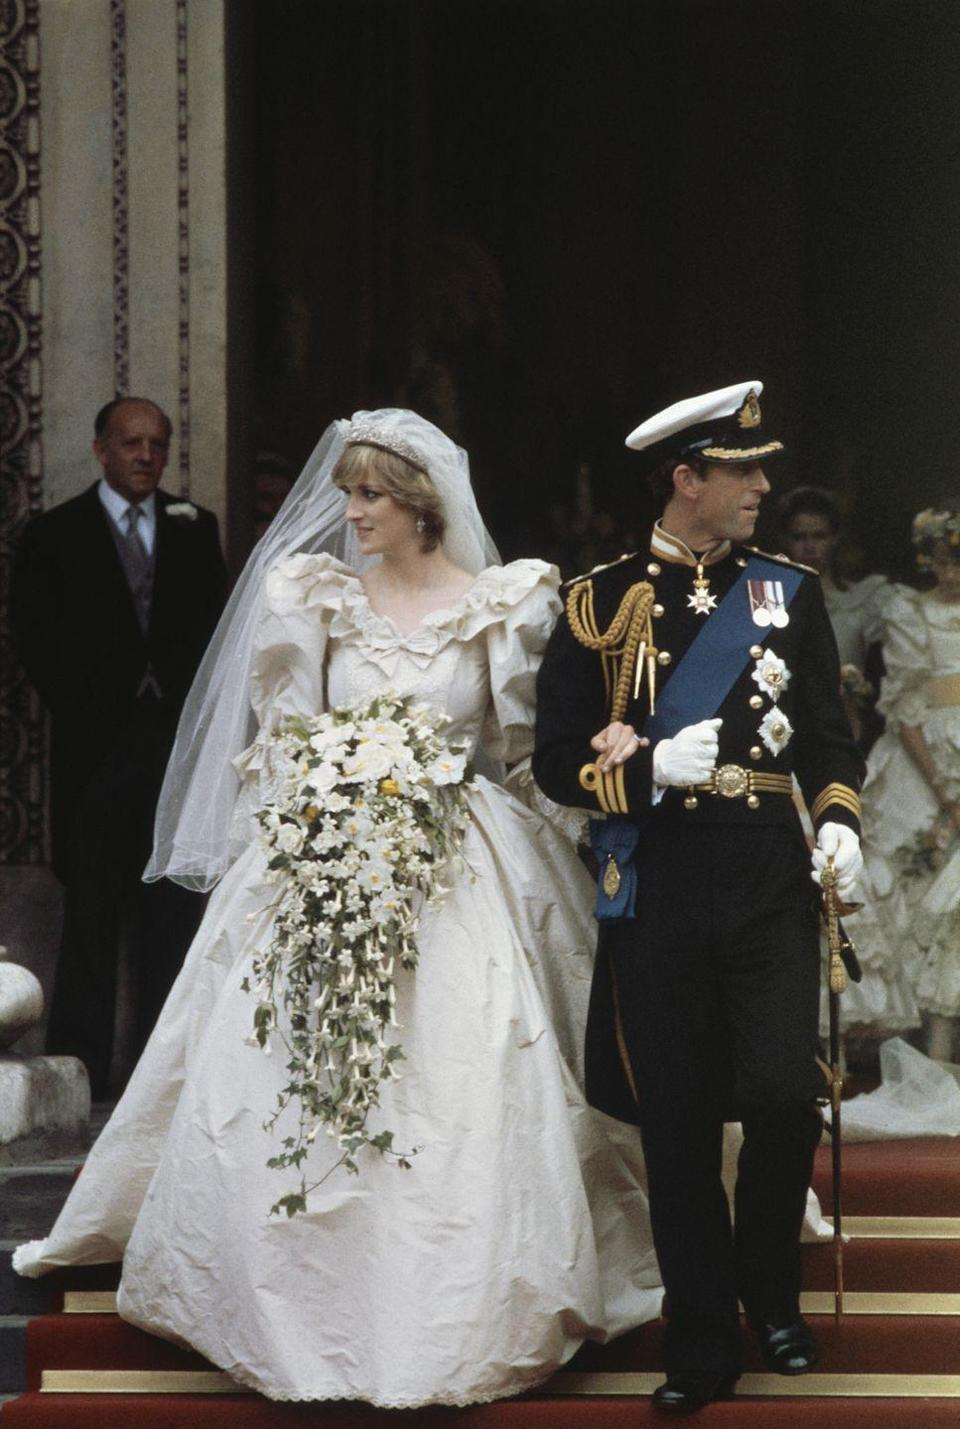 "<p>In 1981, Princess Diana made history when she famously <a href=""https://www.nytimes.com/1981/07/02/world/lady-diana-won-t-vow-to-obey-charles.html"" rel=""nofollow noopener"" target=""_blank"" data-ylk=""slk:refused to say"" class=""link rapid-noclick-resp"">refused to say</a> that she would ""obey"" Prince Charles during their wedding vows. She also called Charles the wrong name!</p>"